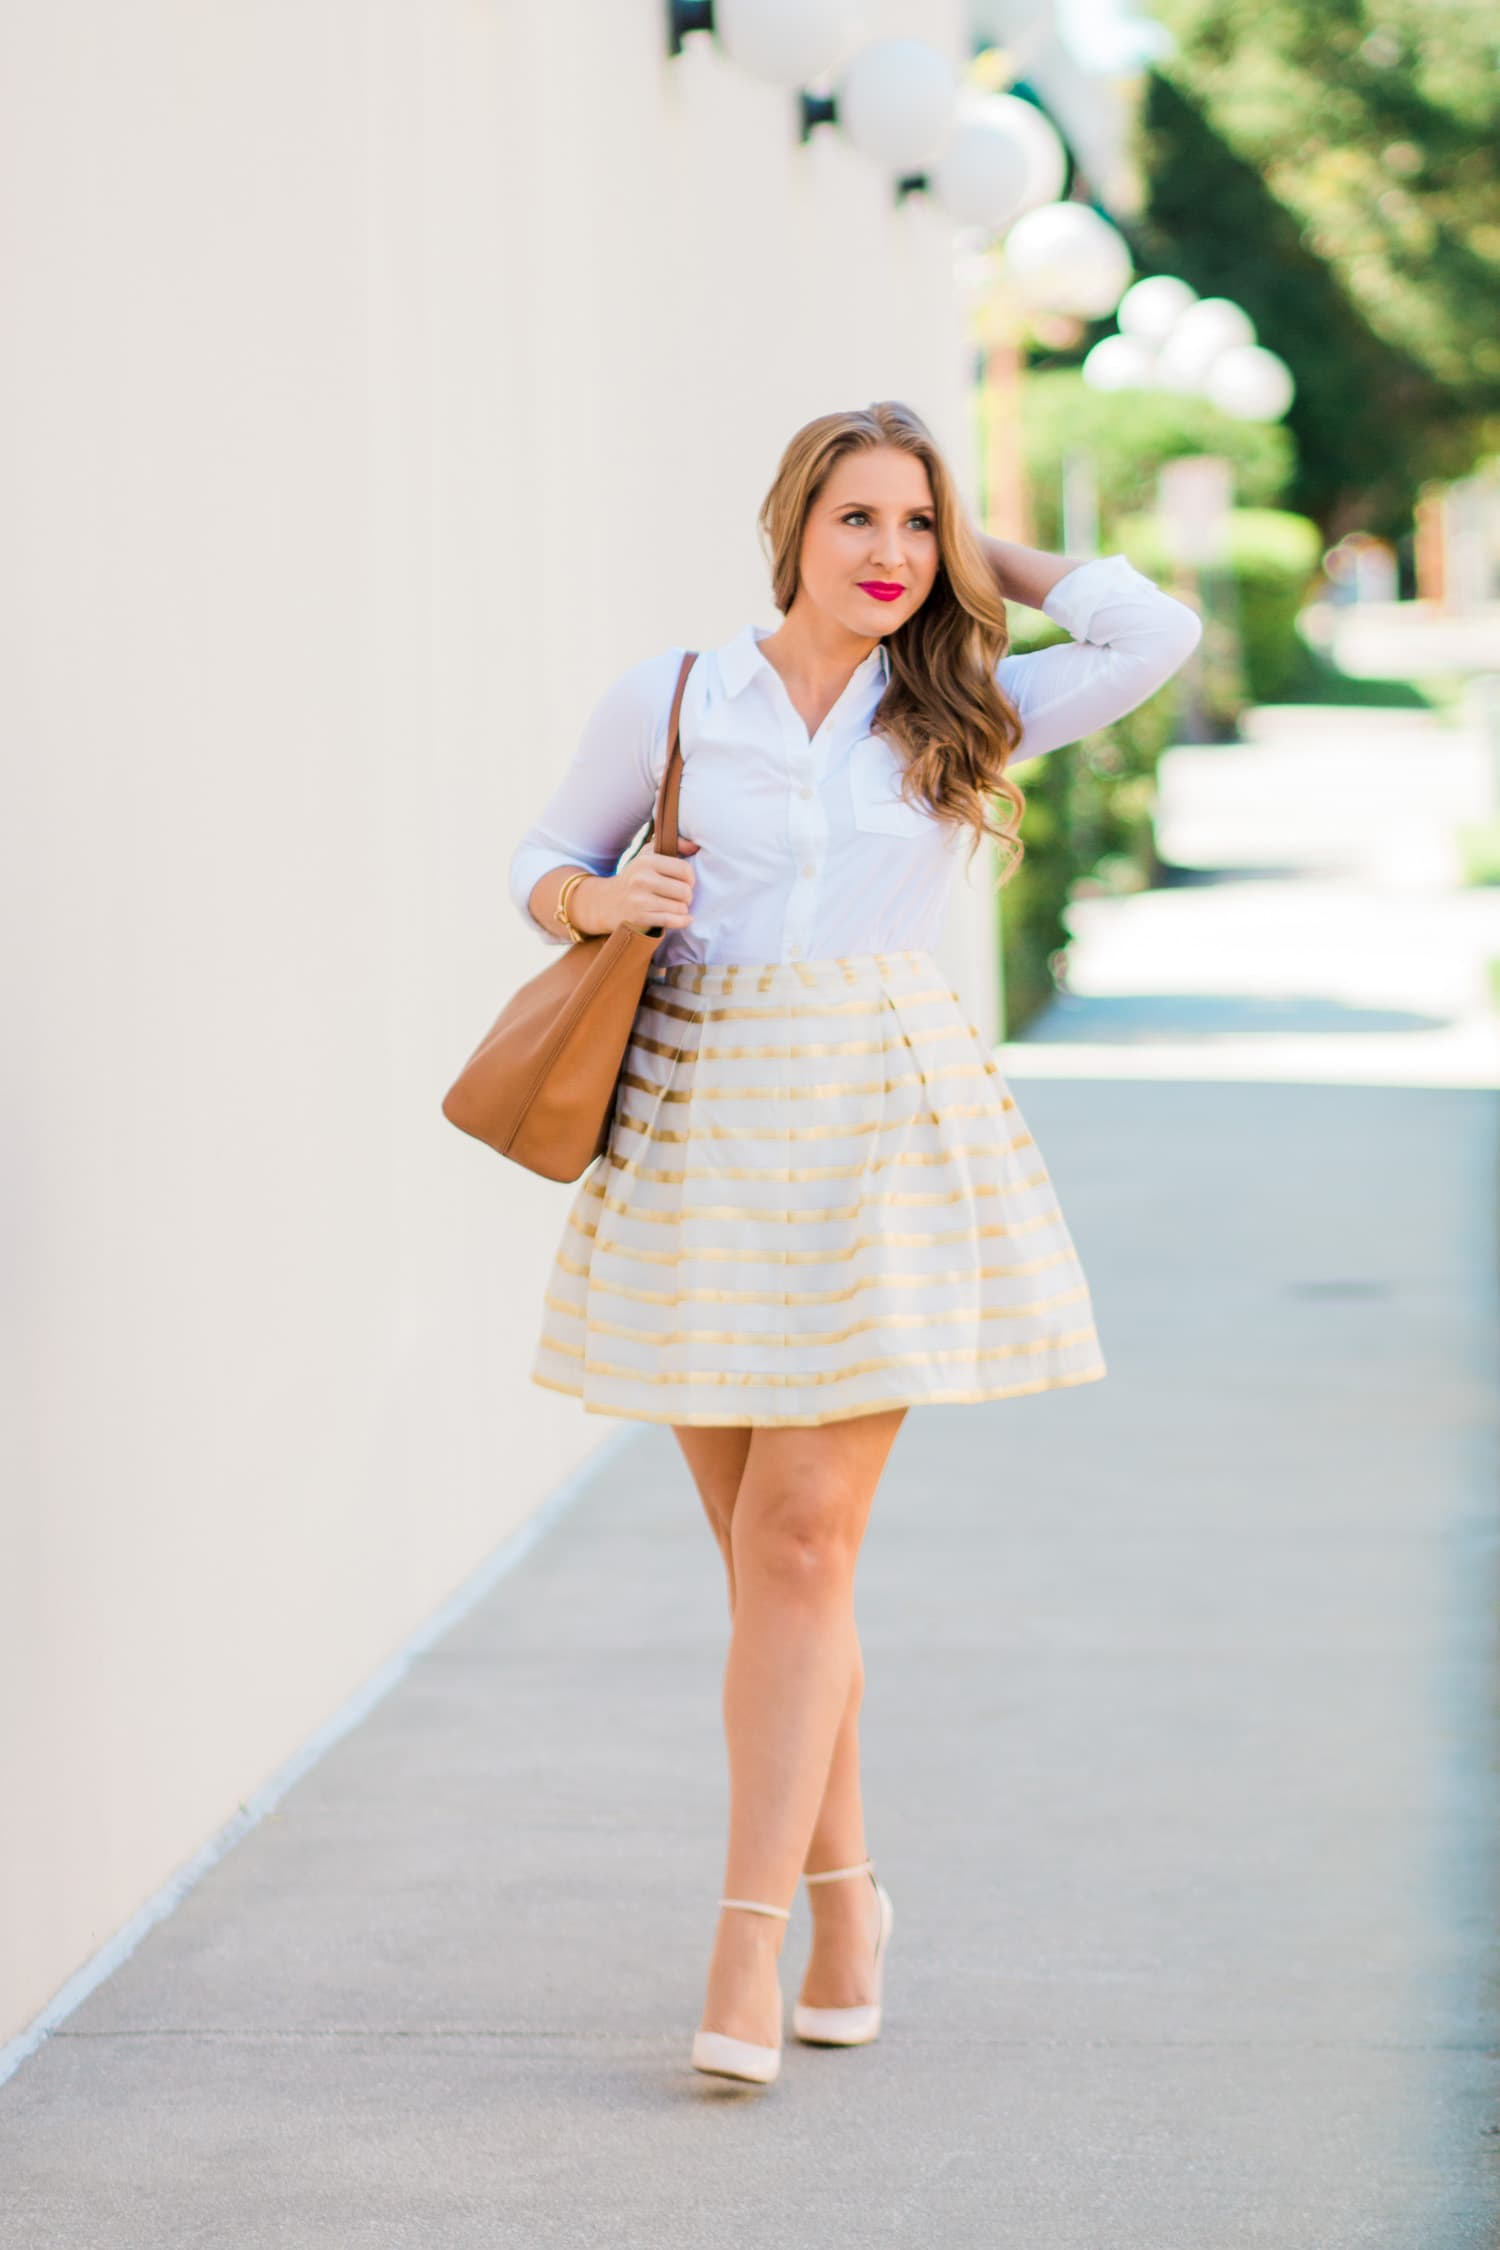 A preppy outfit idea featuring Lilly Pulitzer Kylie skirt in gold and white stripes, Abercrombie classic white button-down Oxford shirt, Charlotte Tilbury The Queen lipstick, Kate Spade clear stud earrings, Tory Burch Perry Tote in cognac, Banana Republic nude pink block heel pumps, Kate Spade pave bow bangle bracelet, and Taudrey engraved gold bracelet styled by fashion blogger Ashley Brooke Nicholas in Orlando, Florida